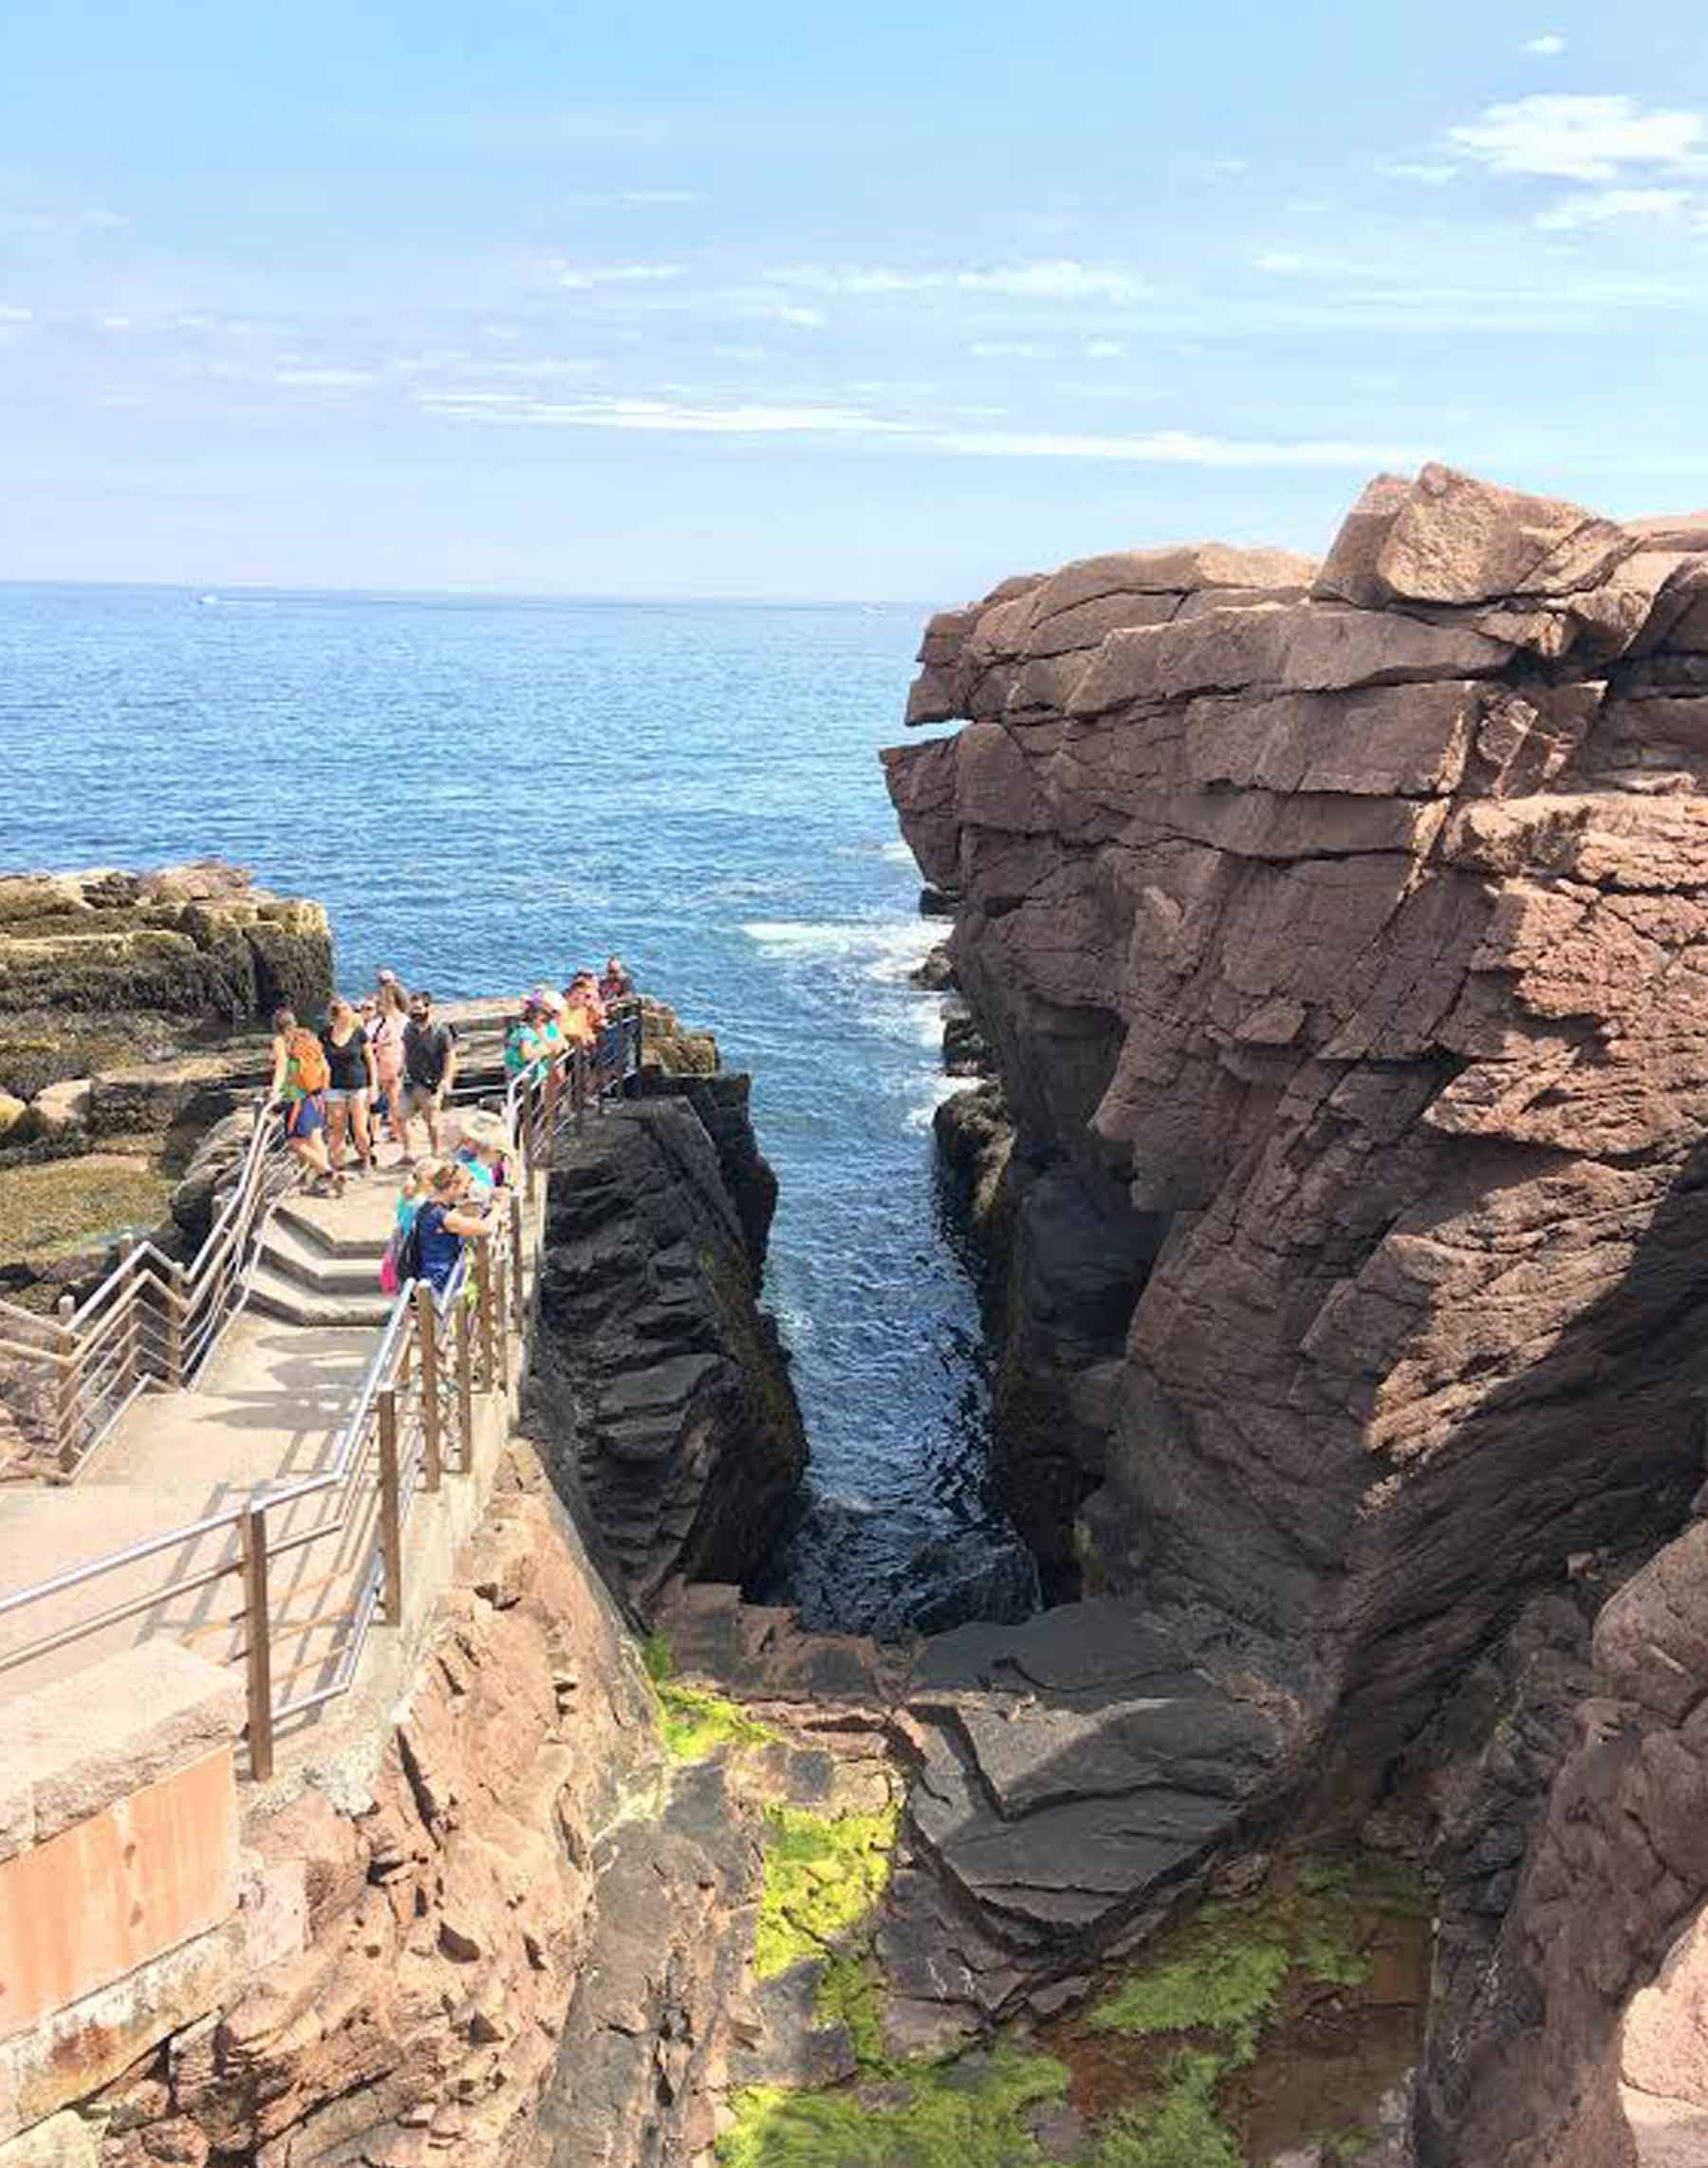 This feature is known as Thunder Hole.